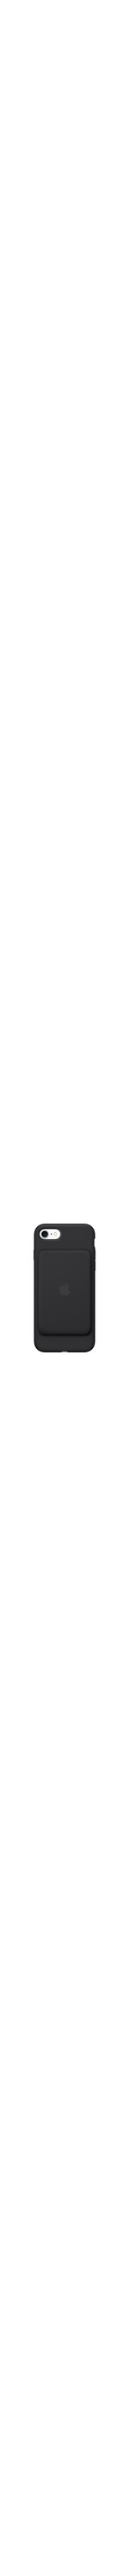 Apple Case for Apple iPhone 7 Smartphone - Black